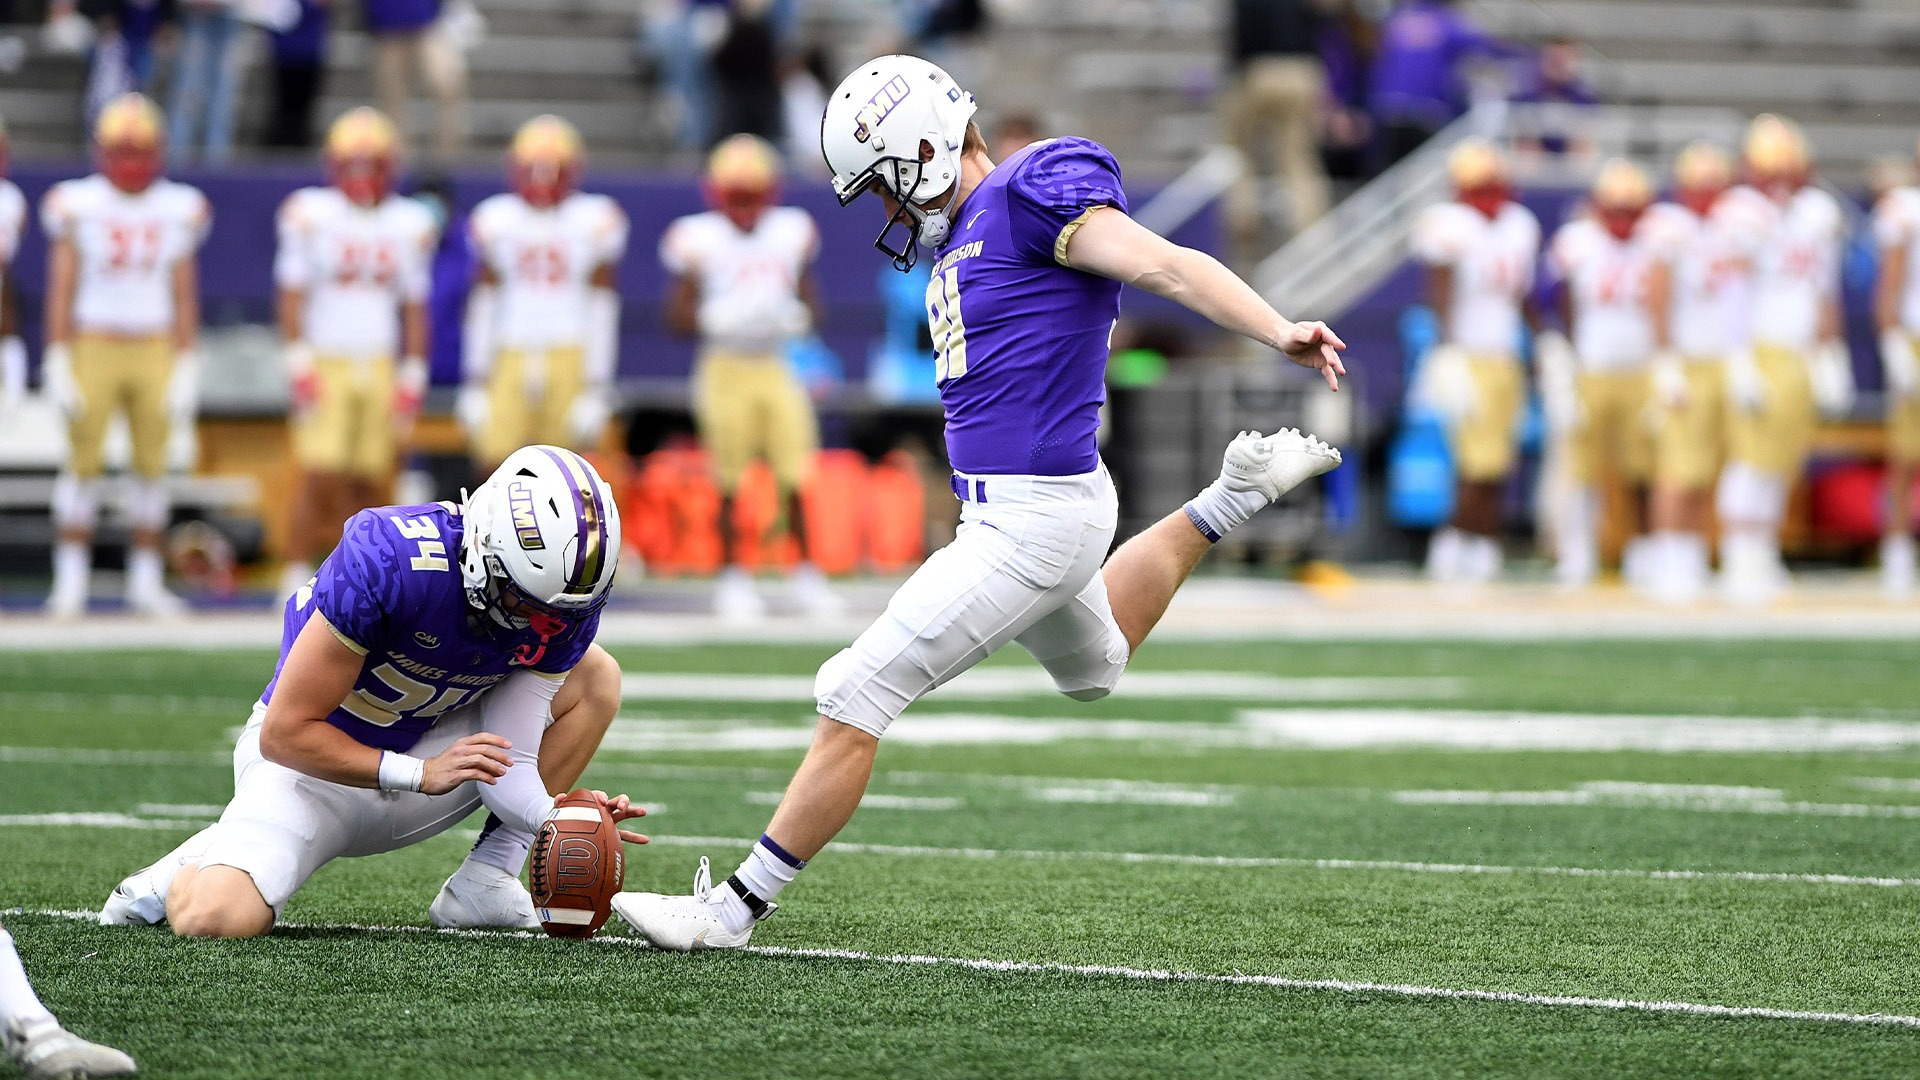 Record-Setting Ratke Among FCS Players of the Week; Duquesne Named Team of the Week